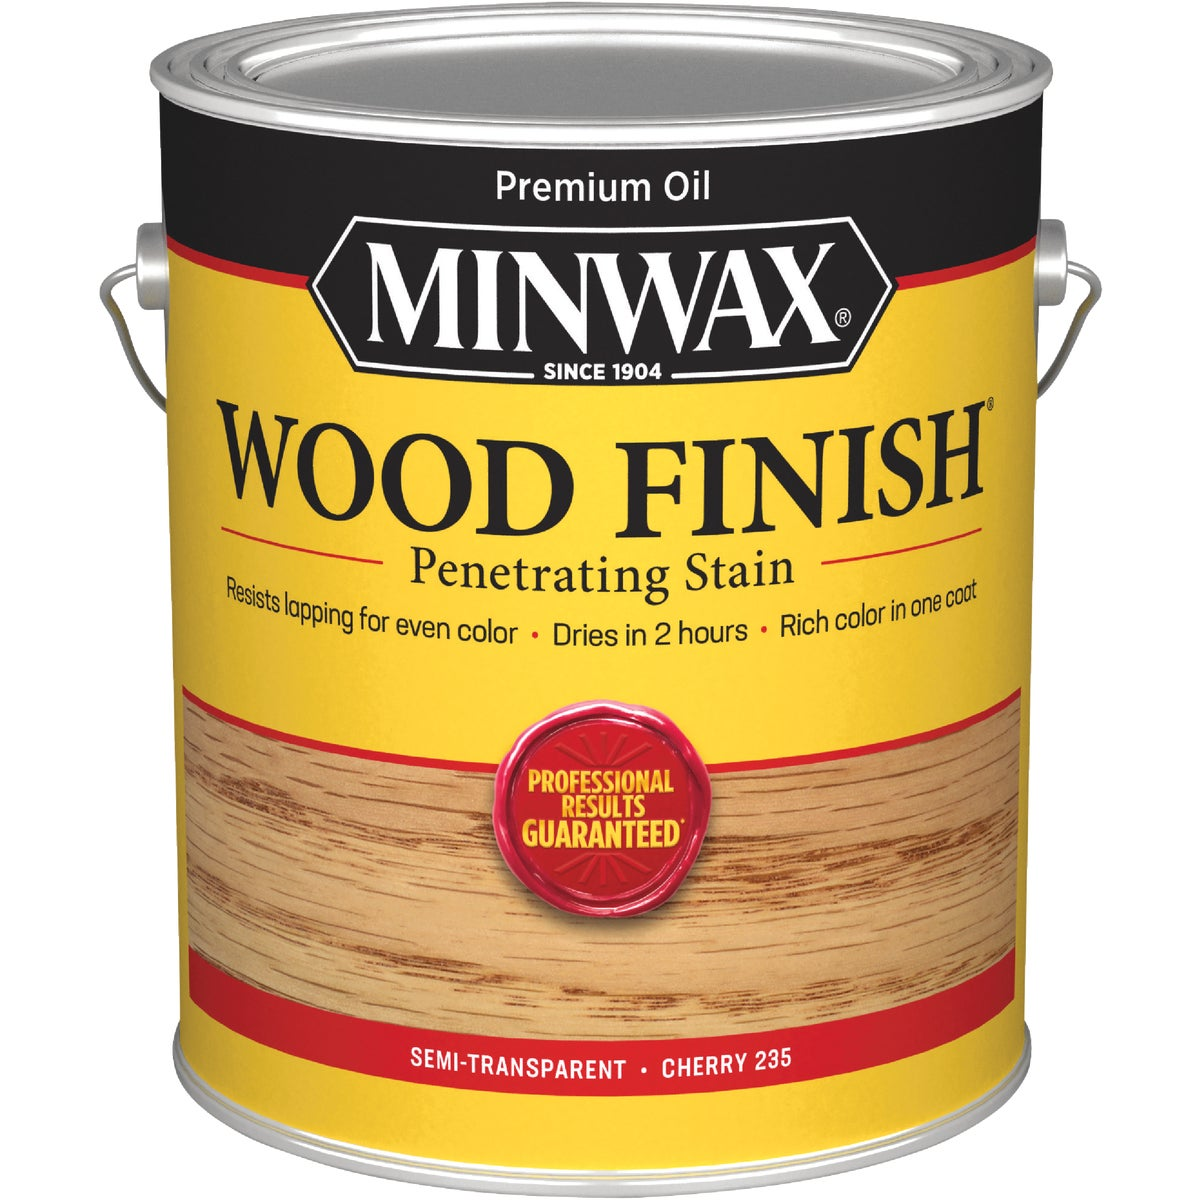 CHERRY WOOD STAIN - 71009 by Minwax Company